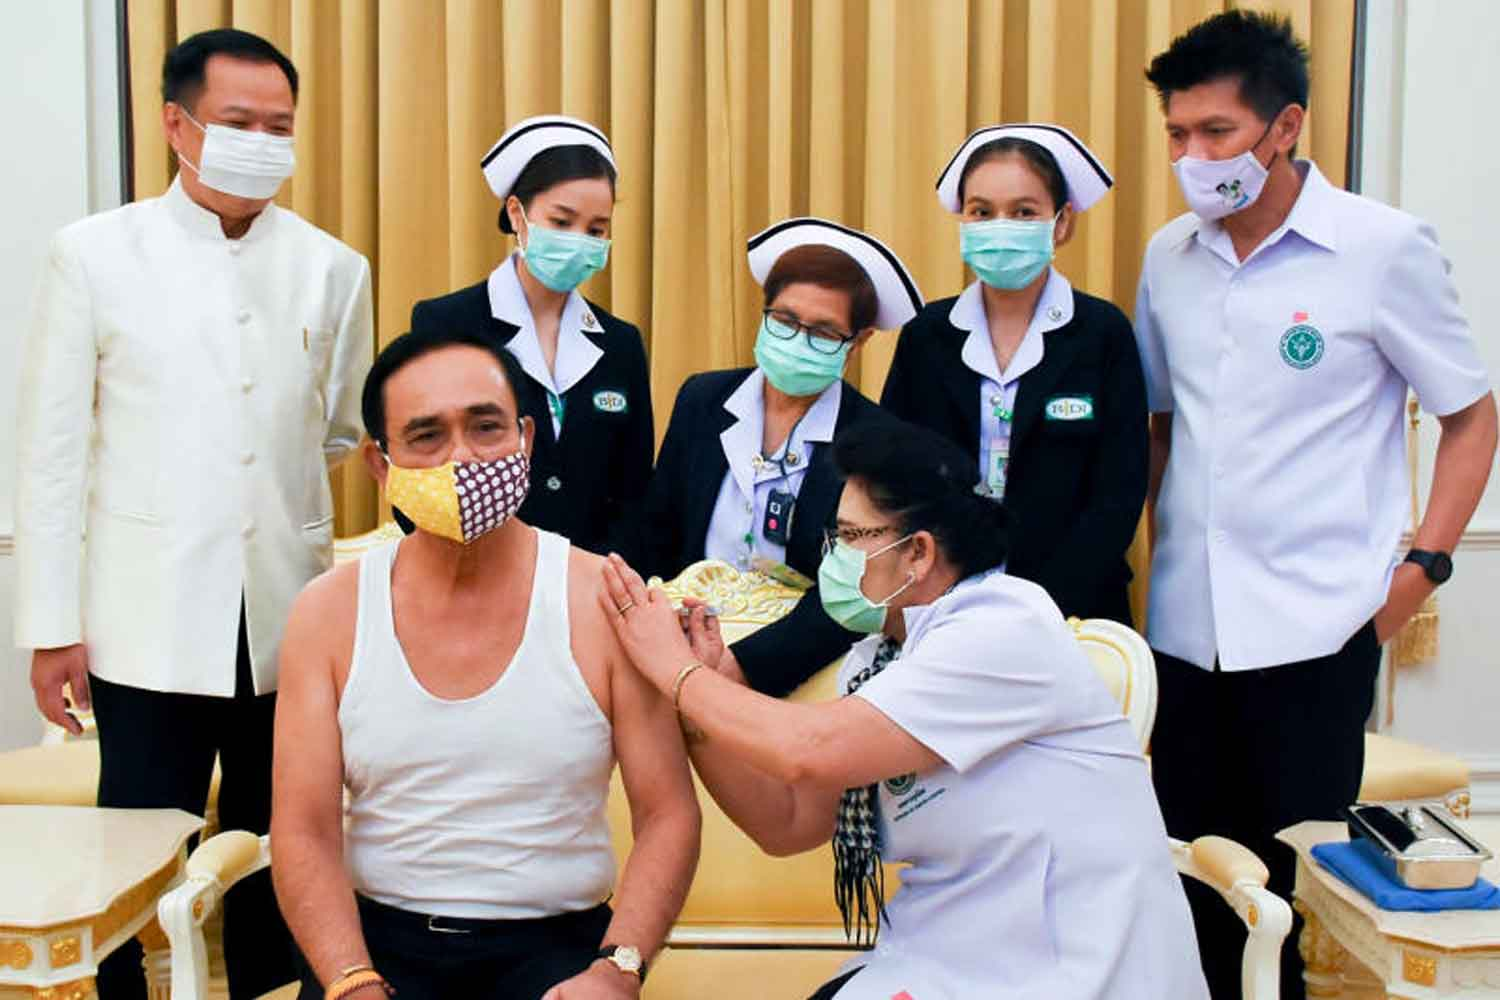 Prime Minister Prayut Chan-o-cha is given an influenza vaccine at Government House. Looking on are Public Health Minister Anutin Charnvirakul, left, and several healthcare workers. (Government House photo)